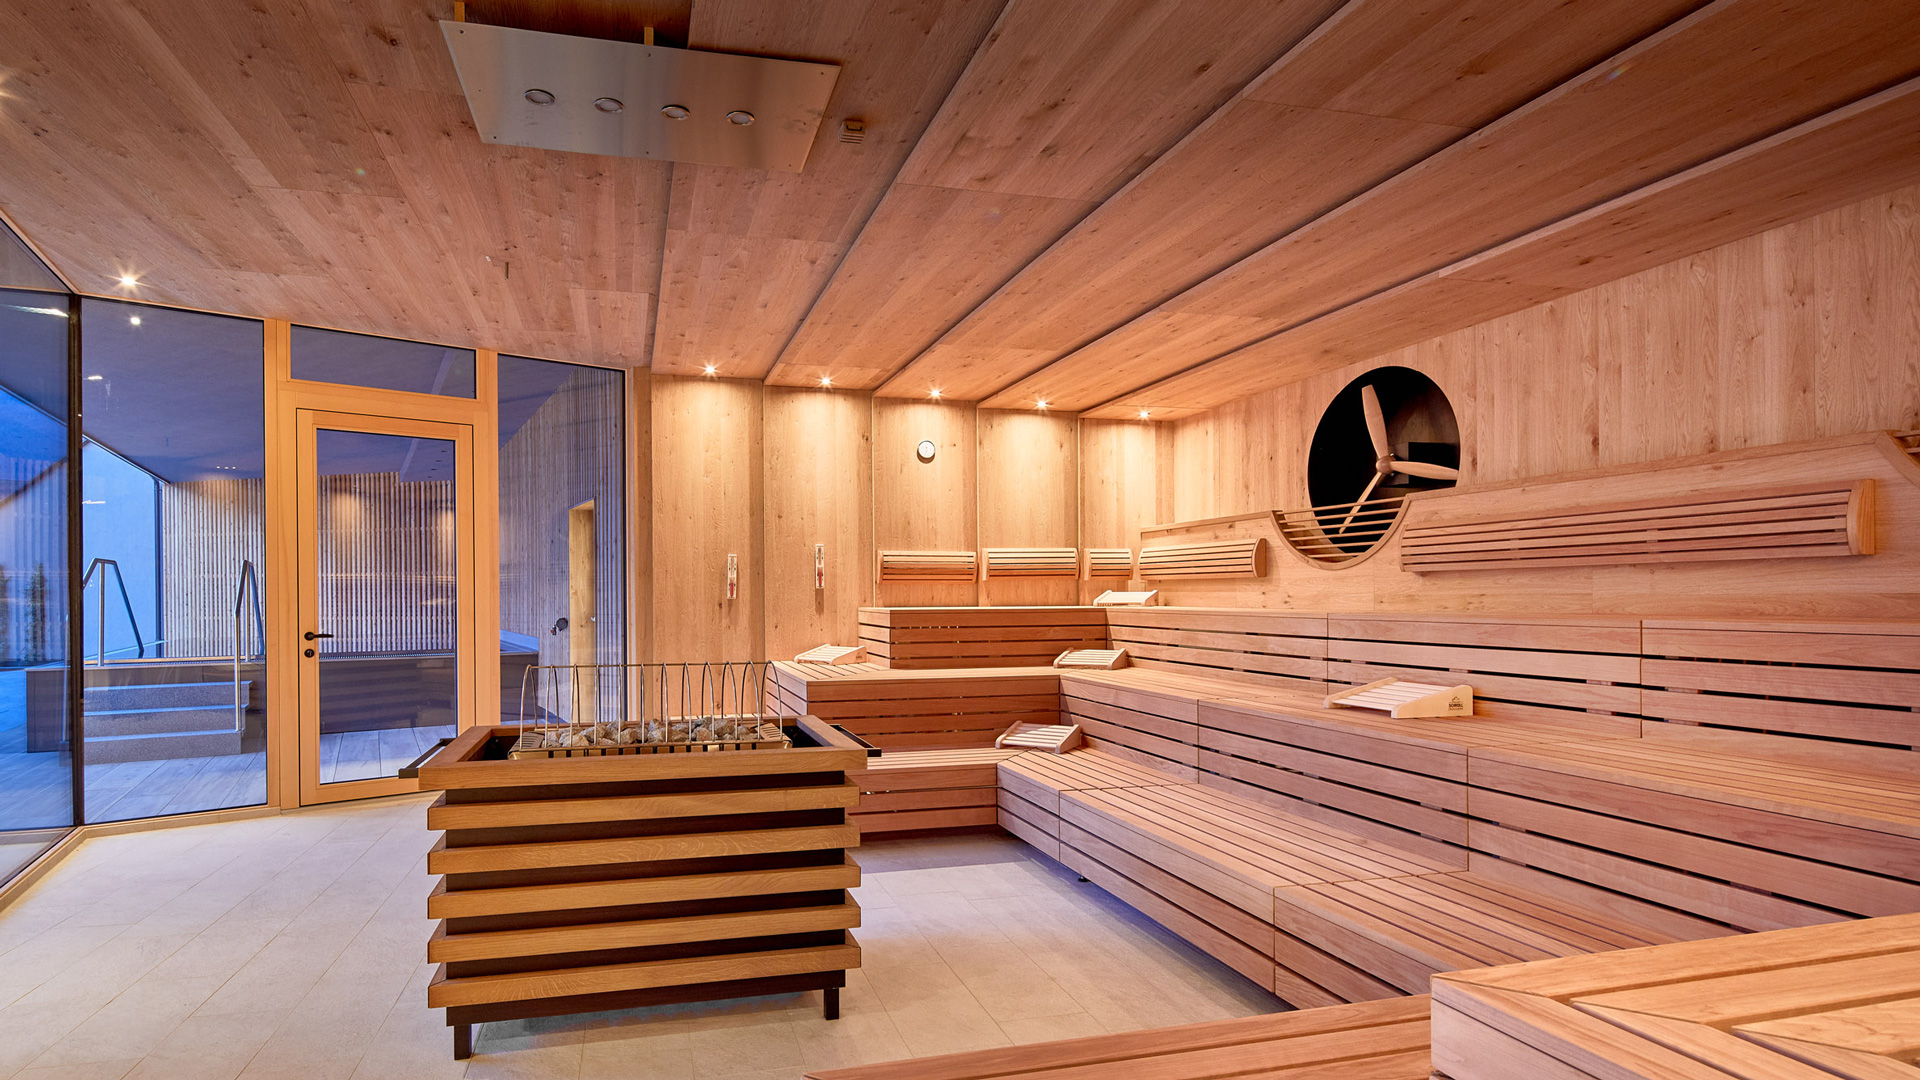 Spa-Plex bastuplywood. Kärnsund Wood Link.